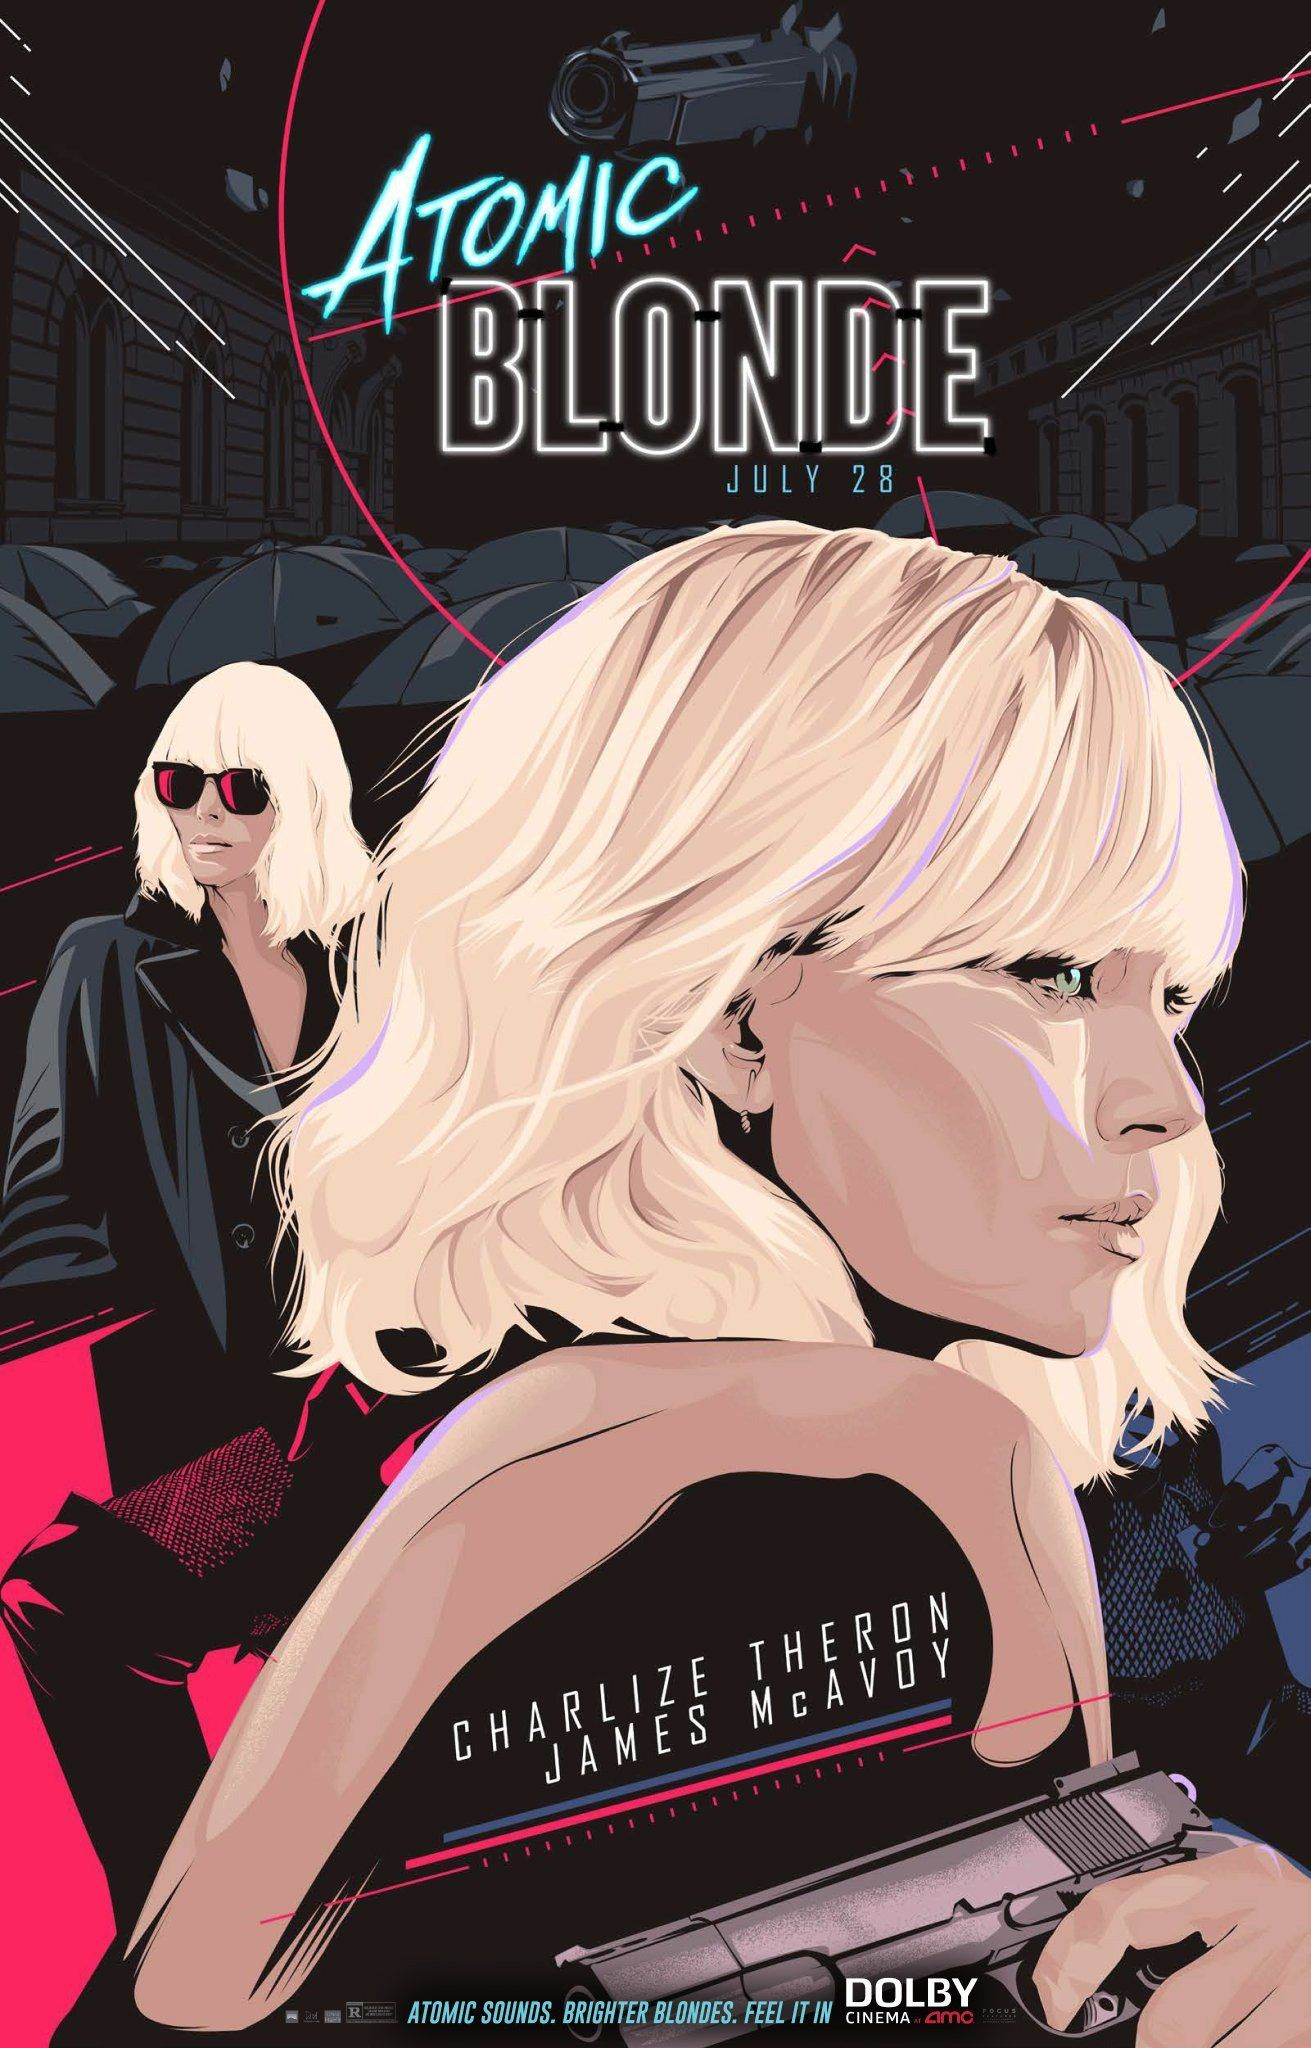 Atomic Blonde - Poster Check out the trailer here.